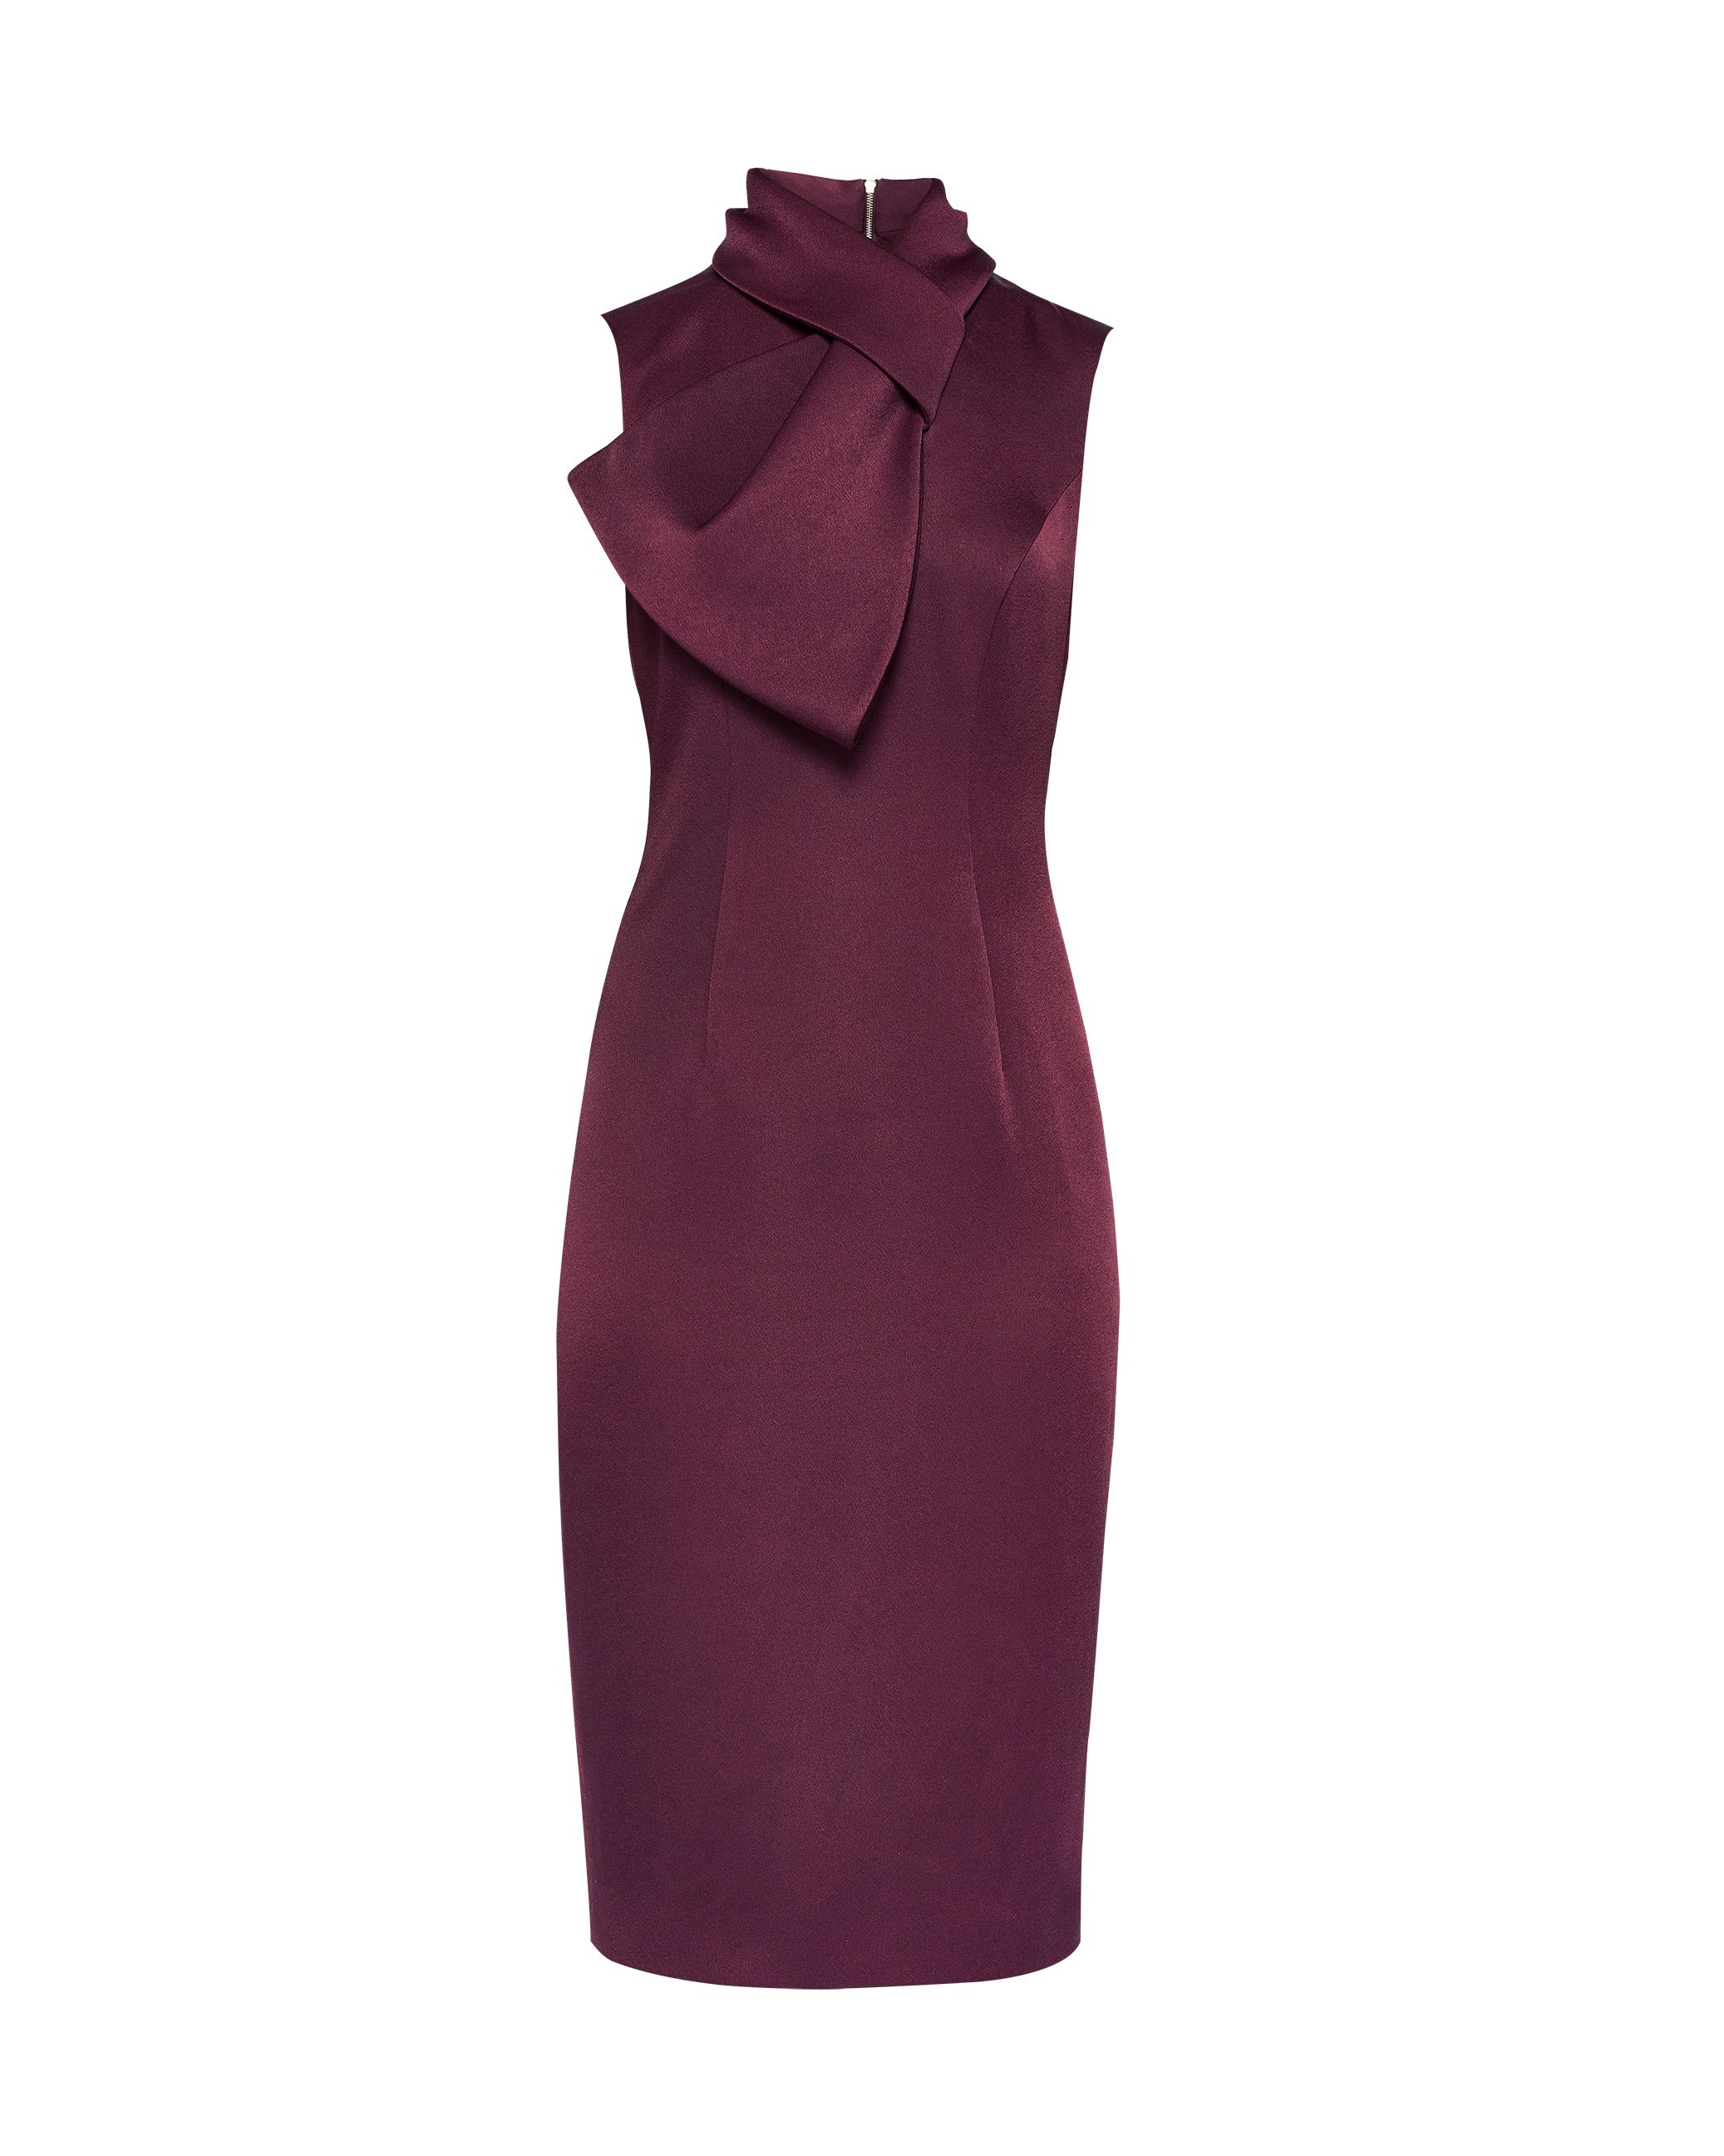 Ted Baker Eyet Dramatic Bow Neck Dress, Maroon